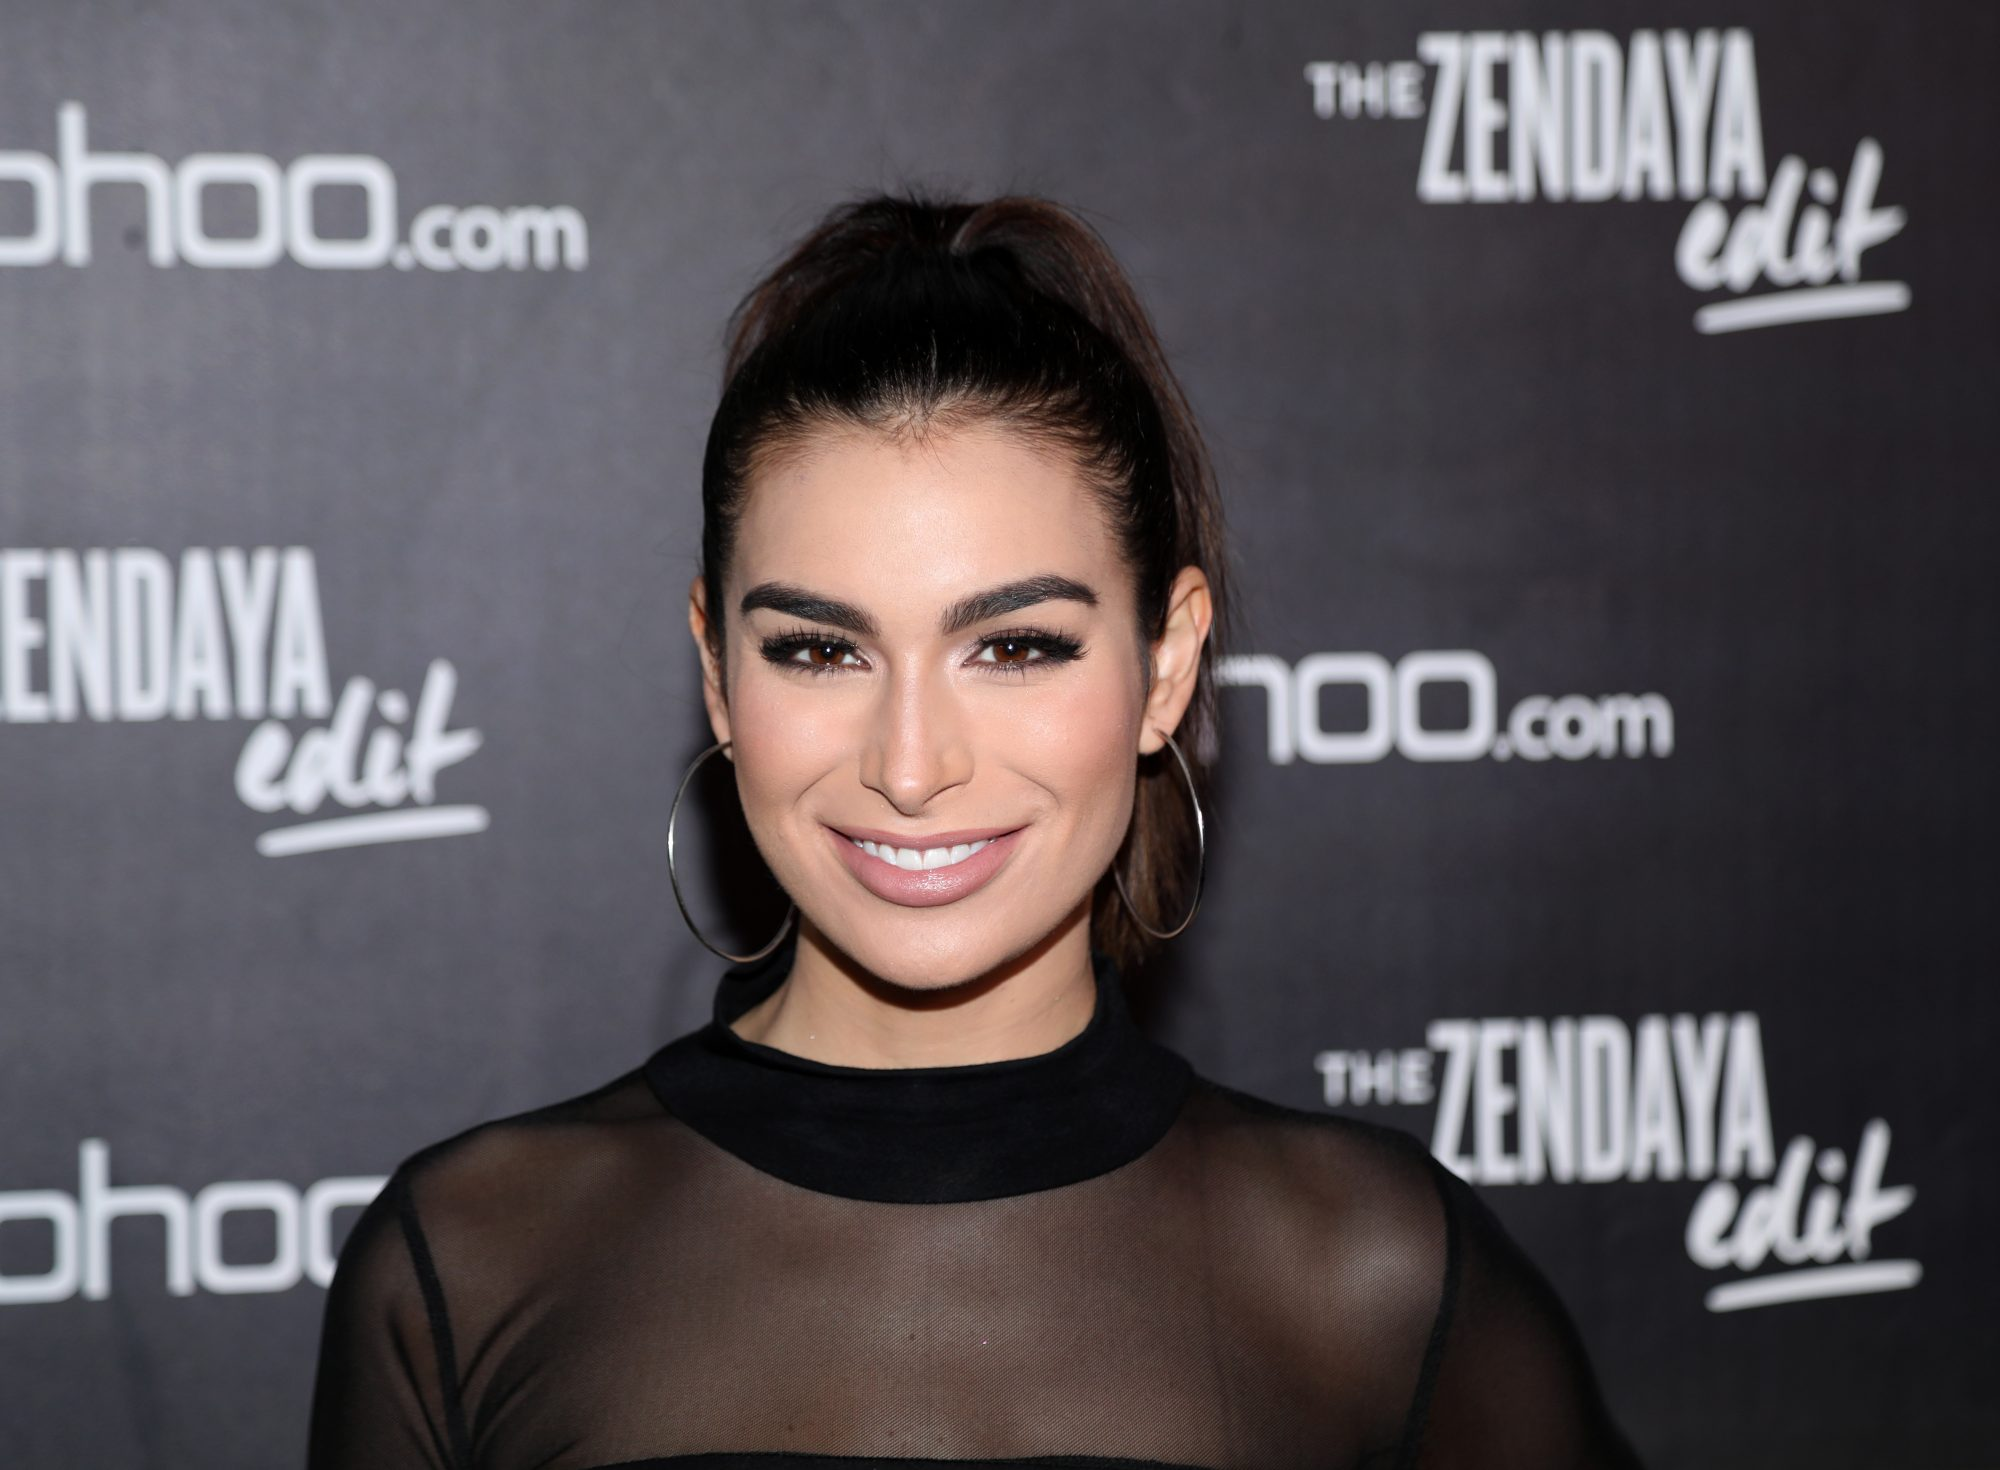 The Acne Treatment The Bachelor's Ashley Iaconetti Swears By for Stubborn Chin Breakouts